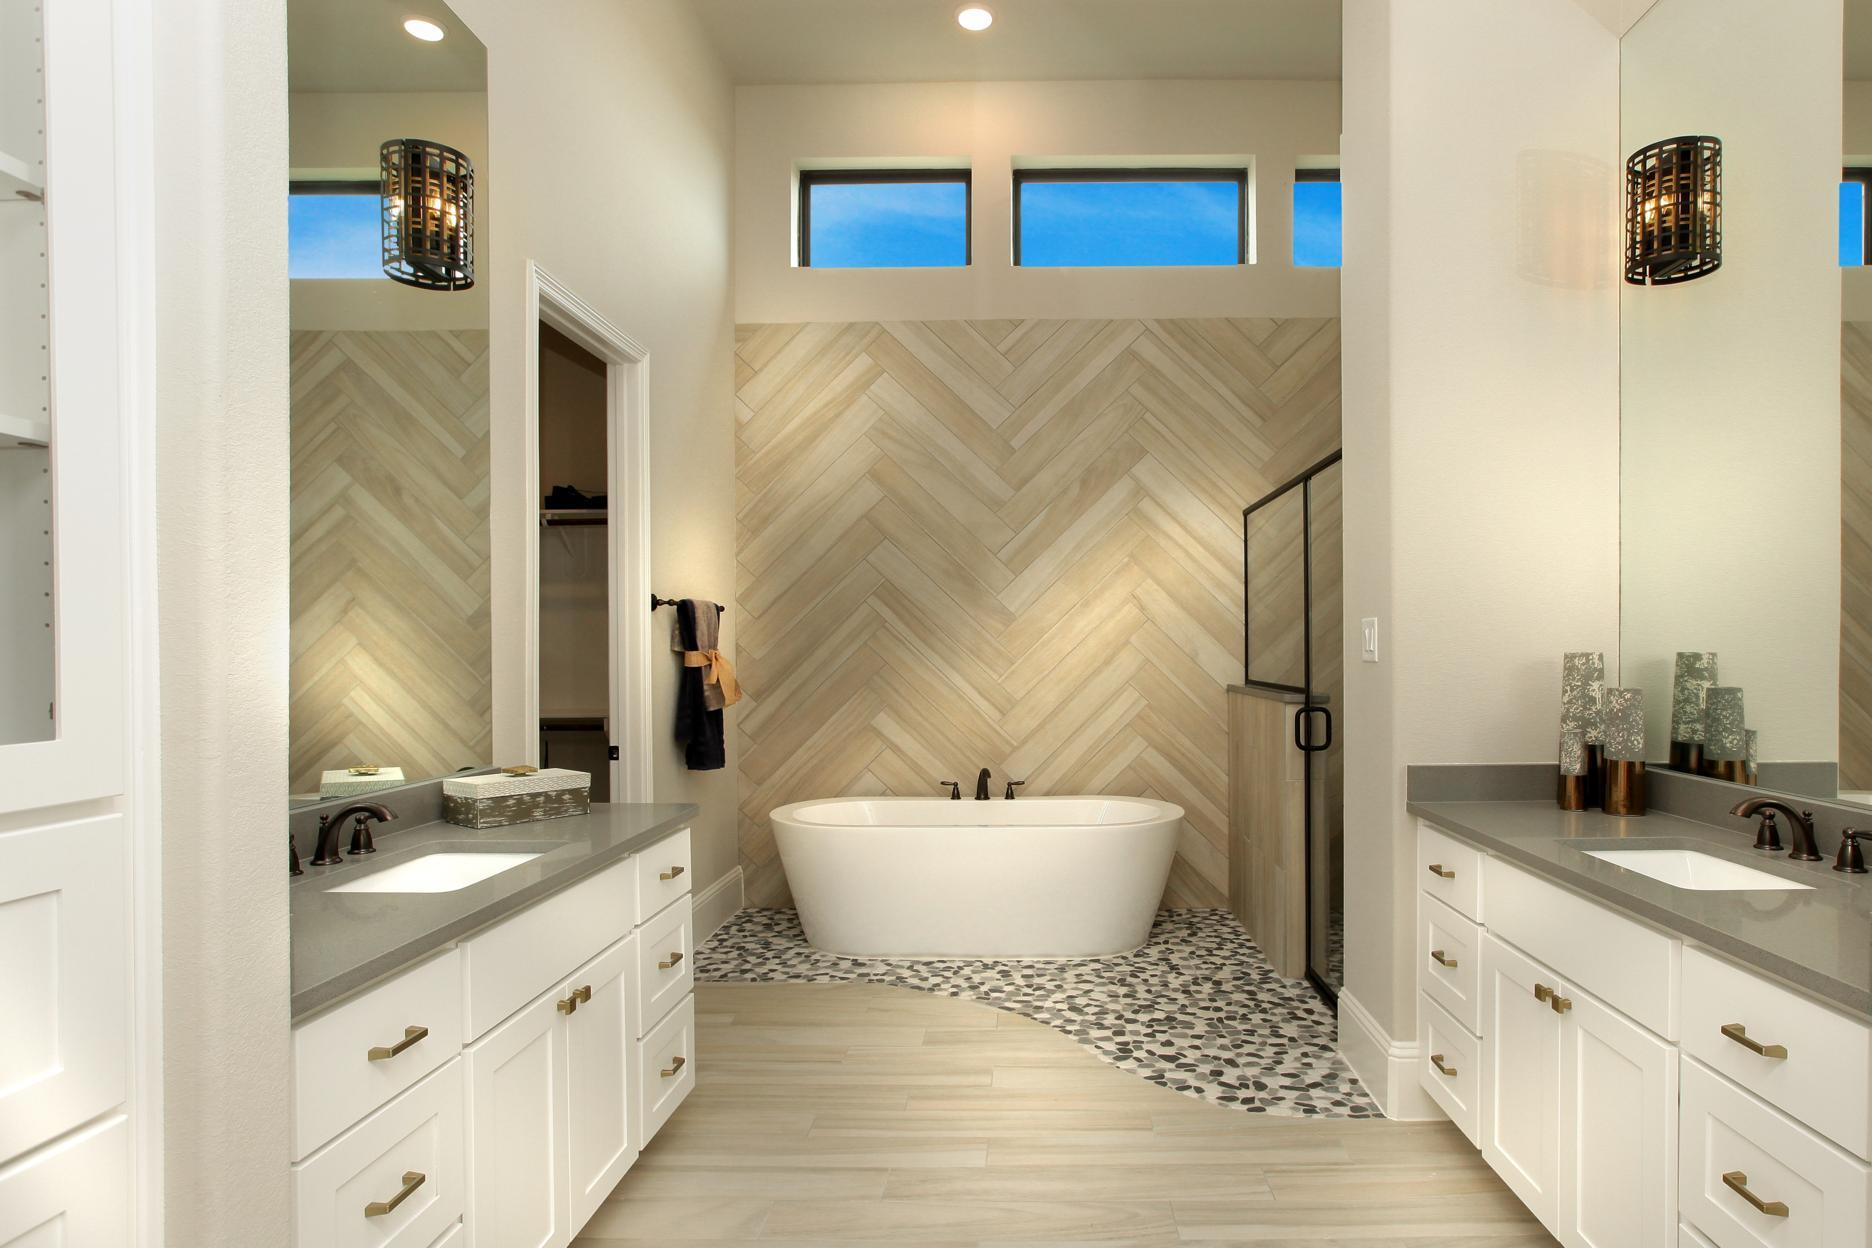 Bathroom-in-Brynlee II-at-Grand Central Park-in-Conroe